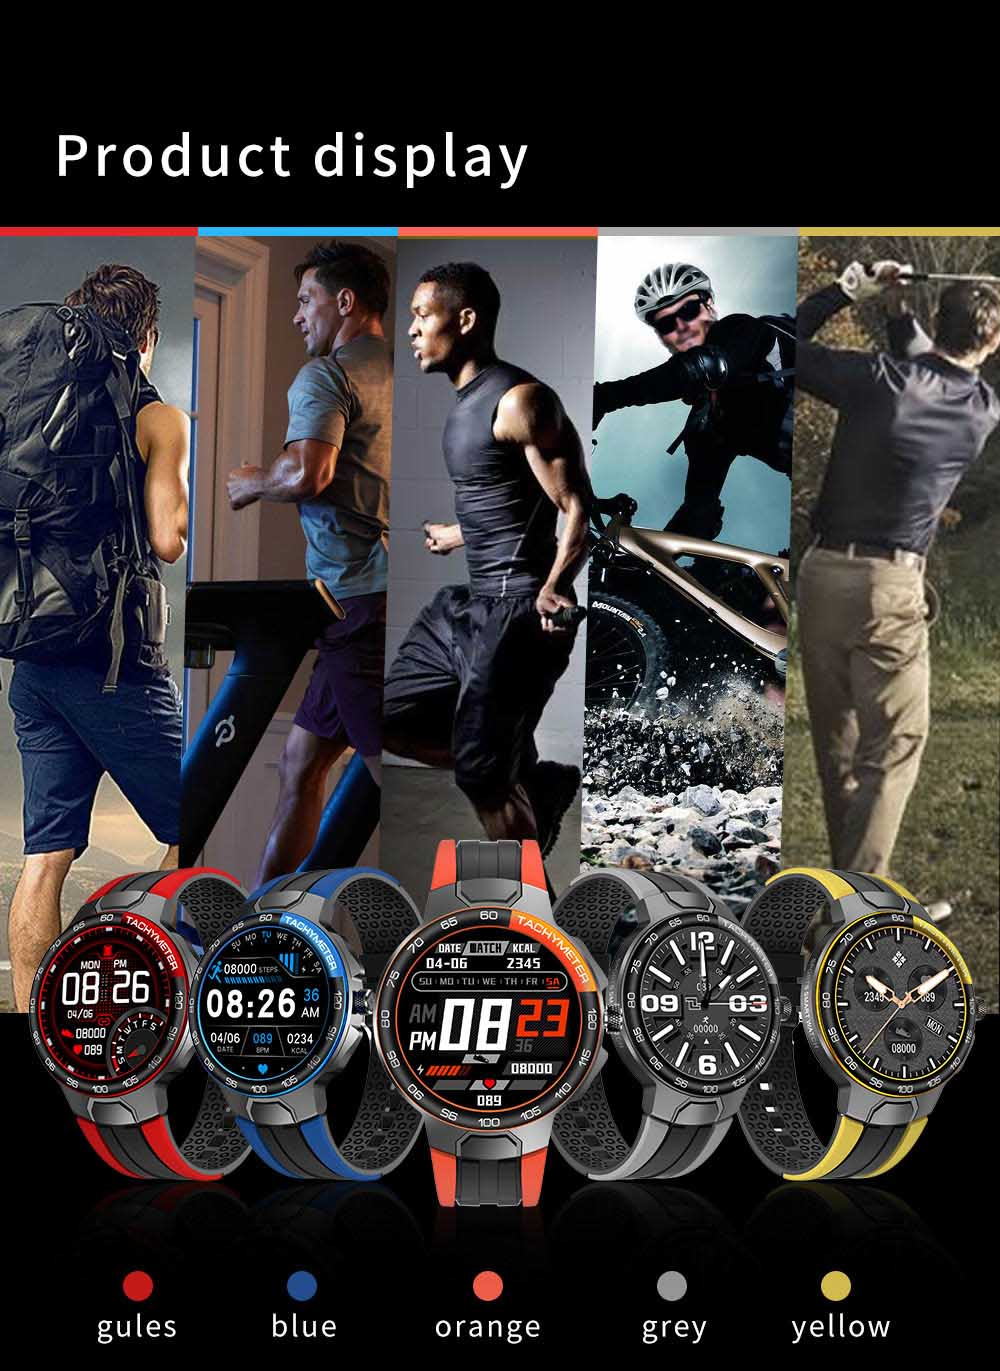 He0d6b477ac61496f943880018b9a4e65E Smart Watch Men Women IP68 Waterproof Bluetooth 5.0 24 Exercise Modes Smartwatch E1-5 Heart Rate Monitoring for Android Iosr A